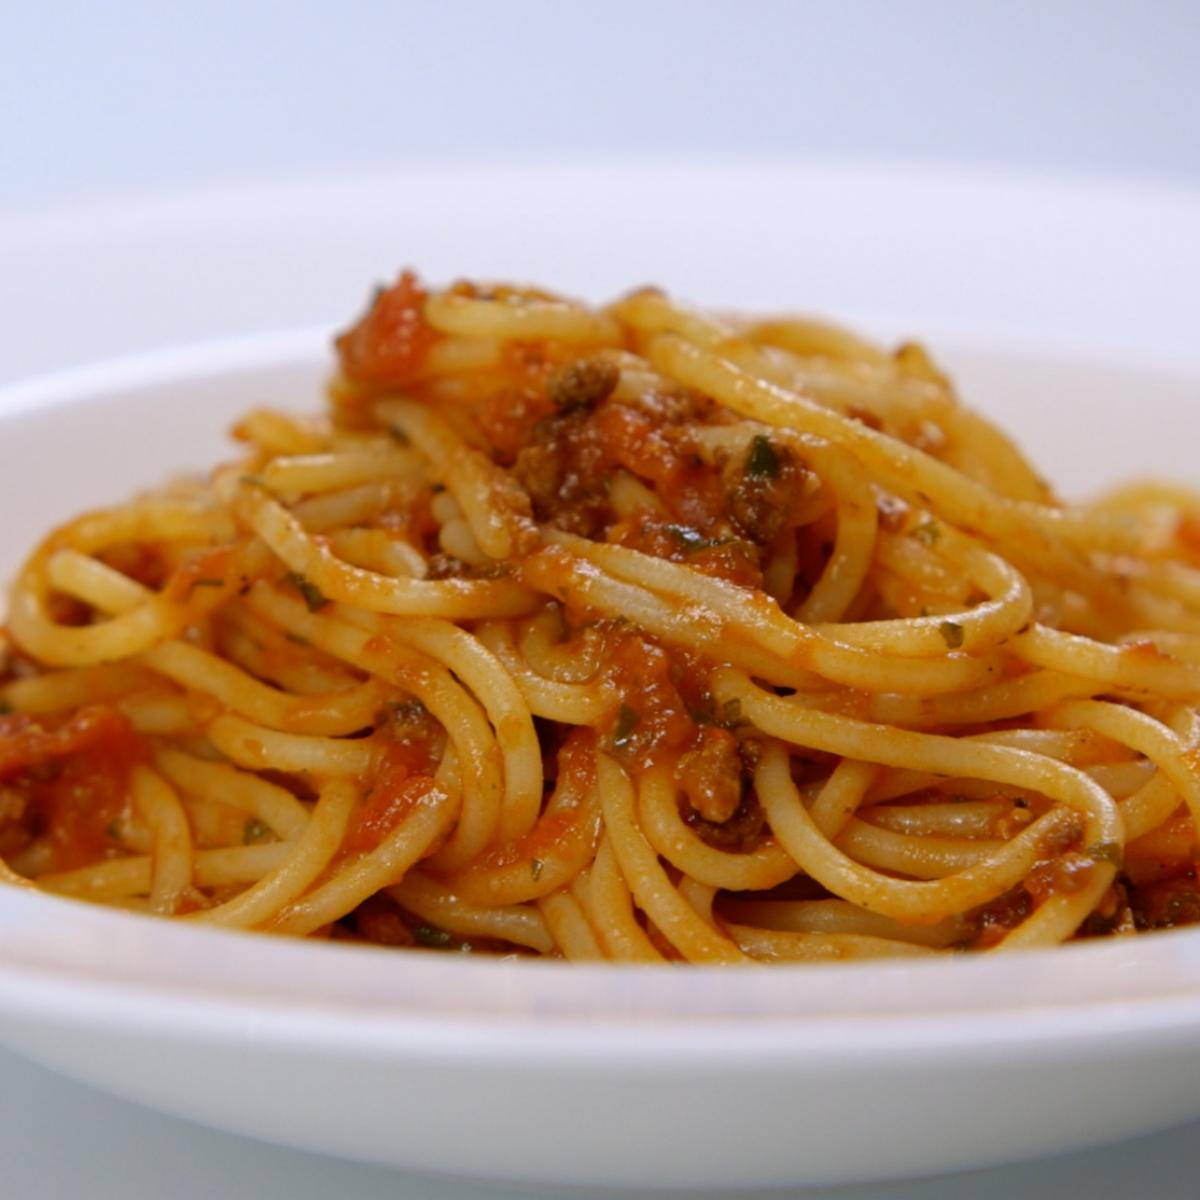 A picture of Delia's Spaghetti Bolognese recipe